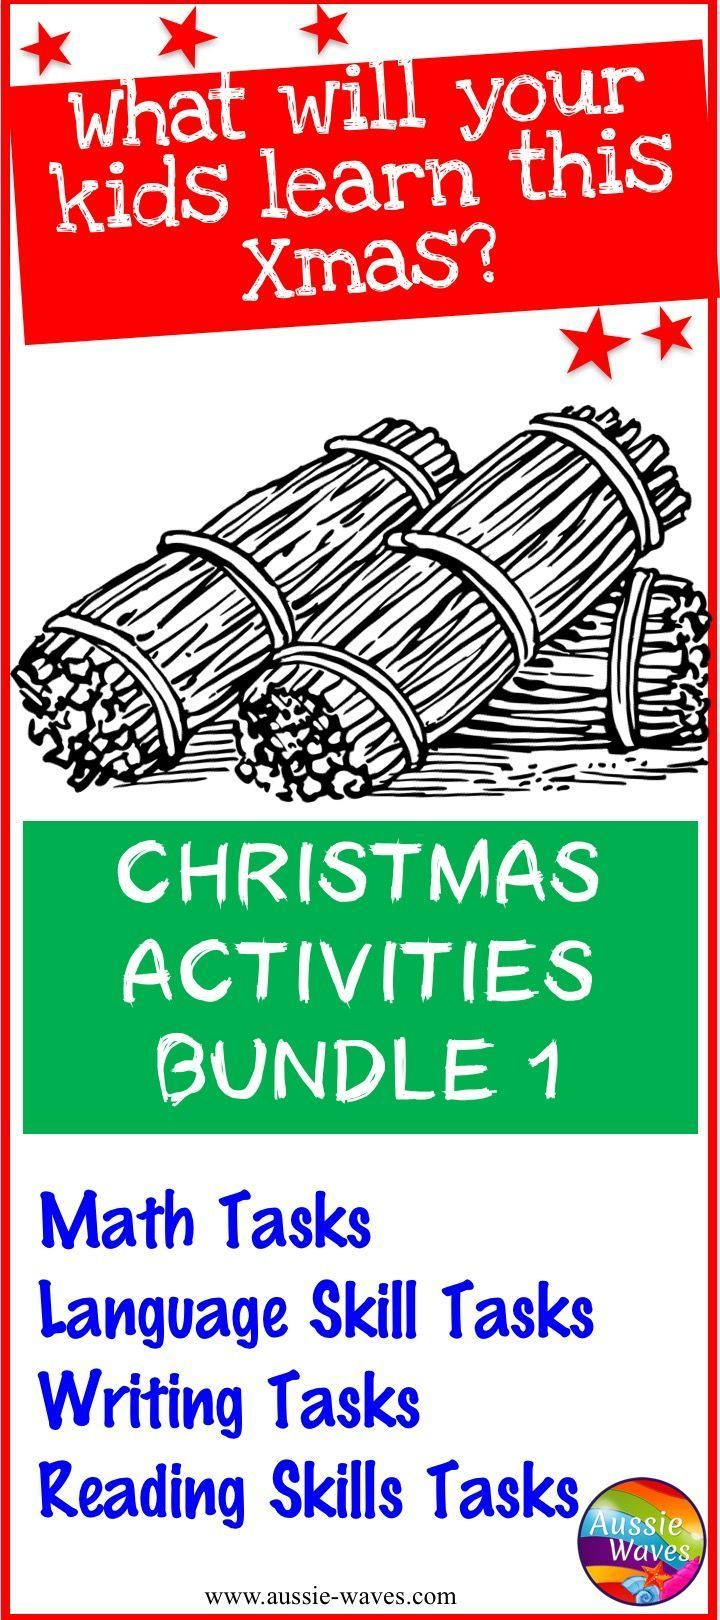 A Christmas bundle of printable activities. Reading, Math, Language and Writing tasks. All FUN learning and thinking!